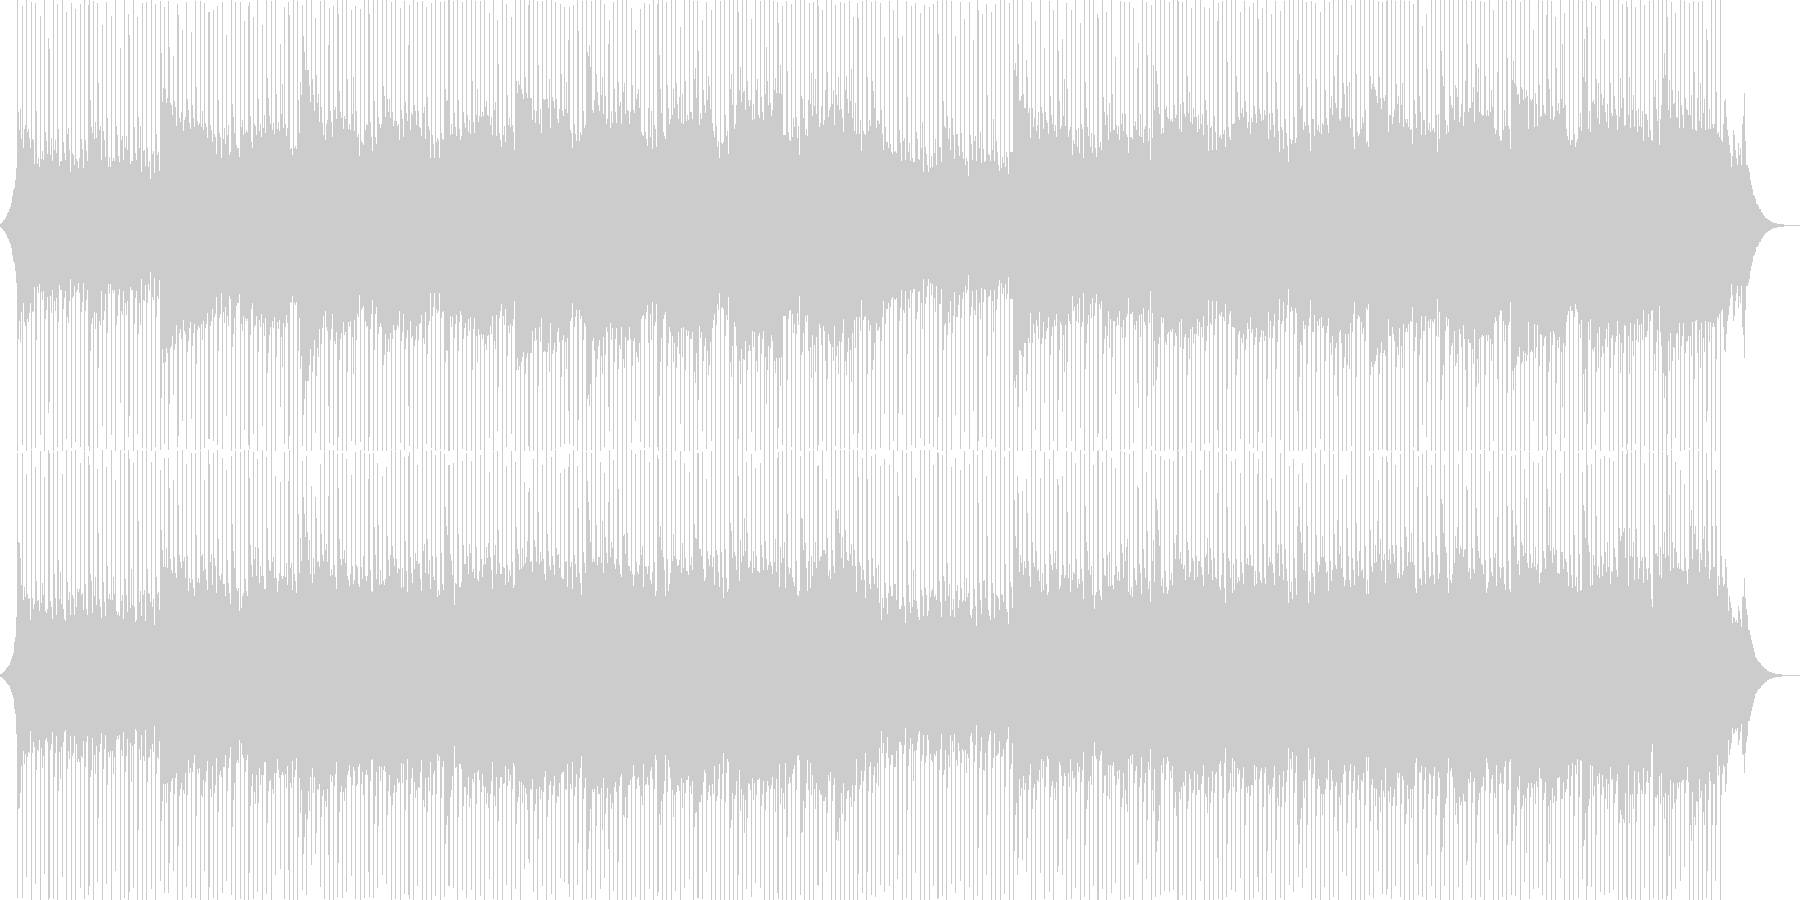 Corporate VP, company introduction, refreshing, transparent's unreproduced waveform